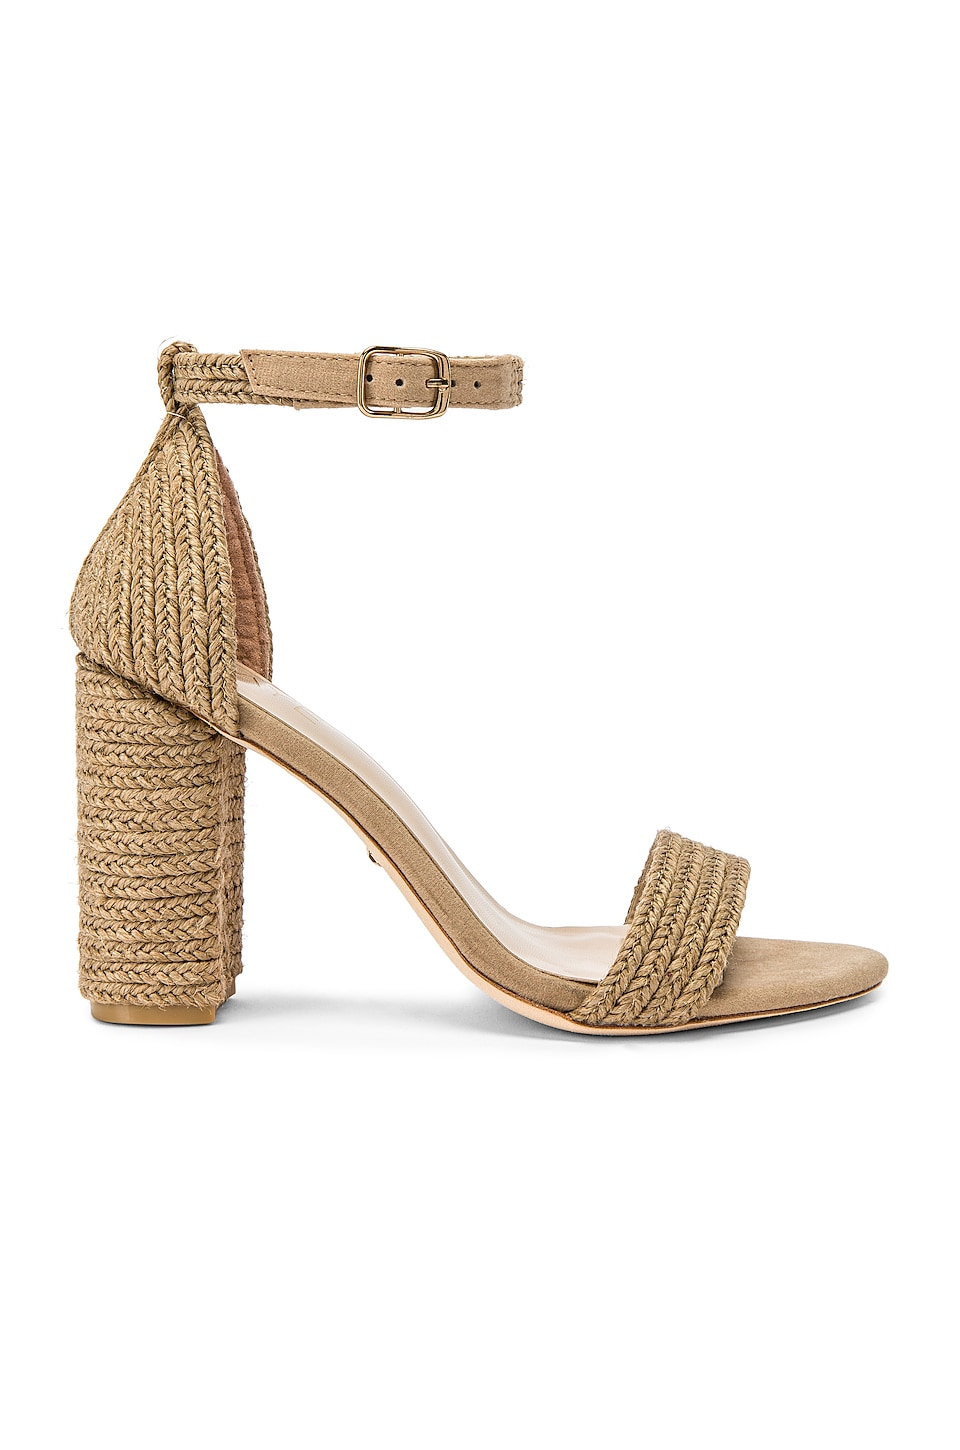 RAYE Bliss Heel in Natural